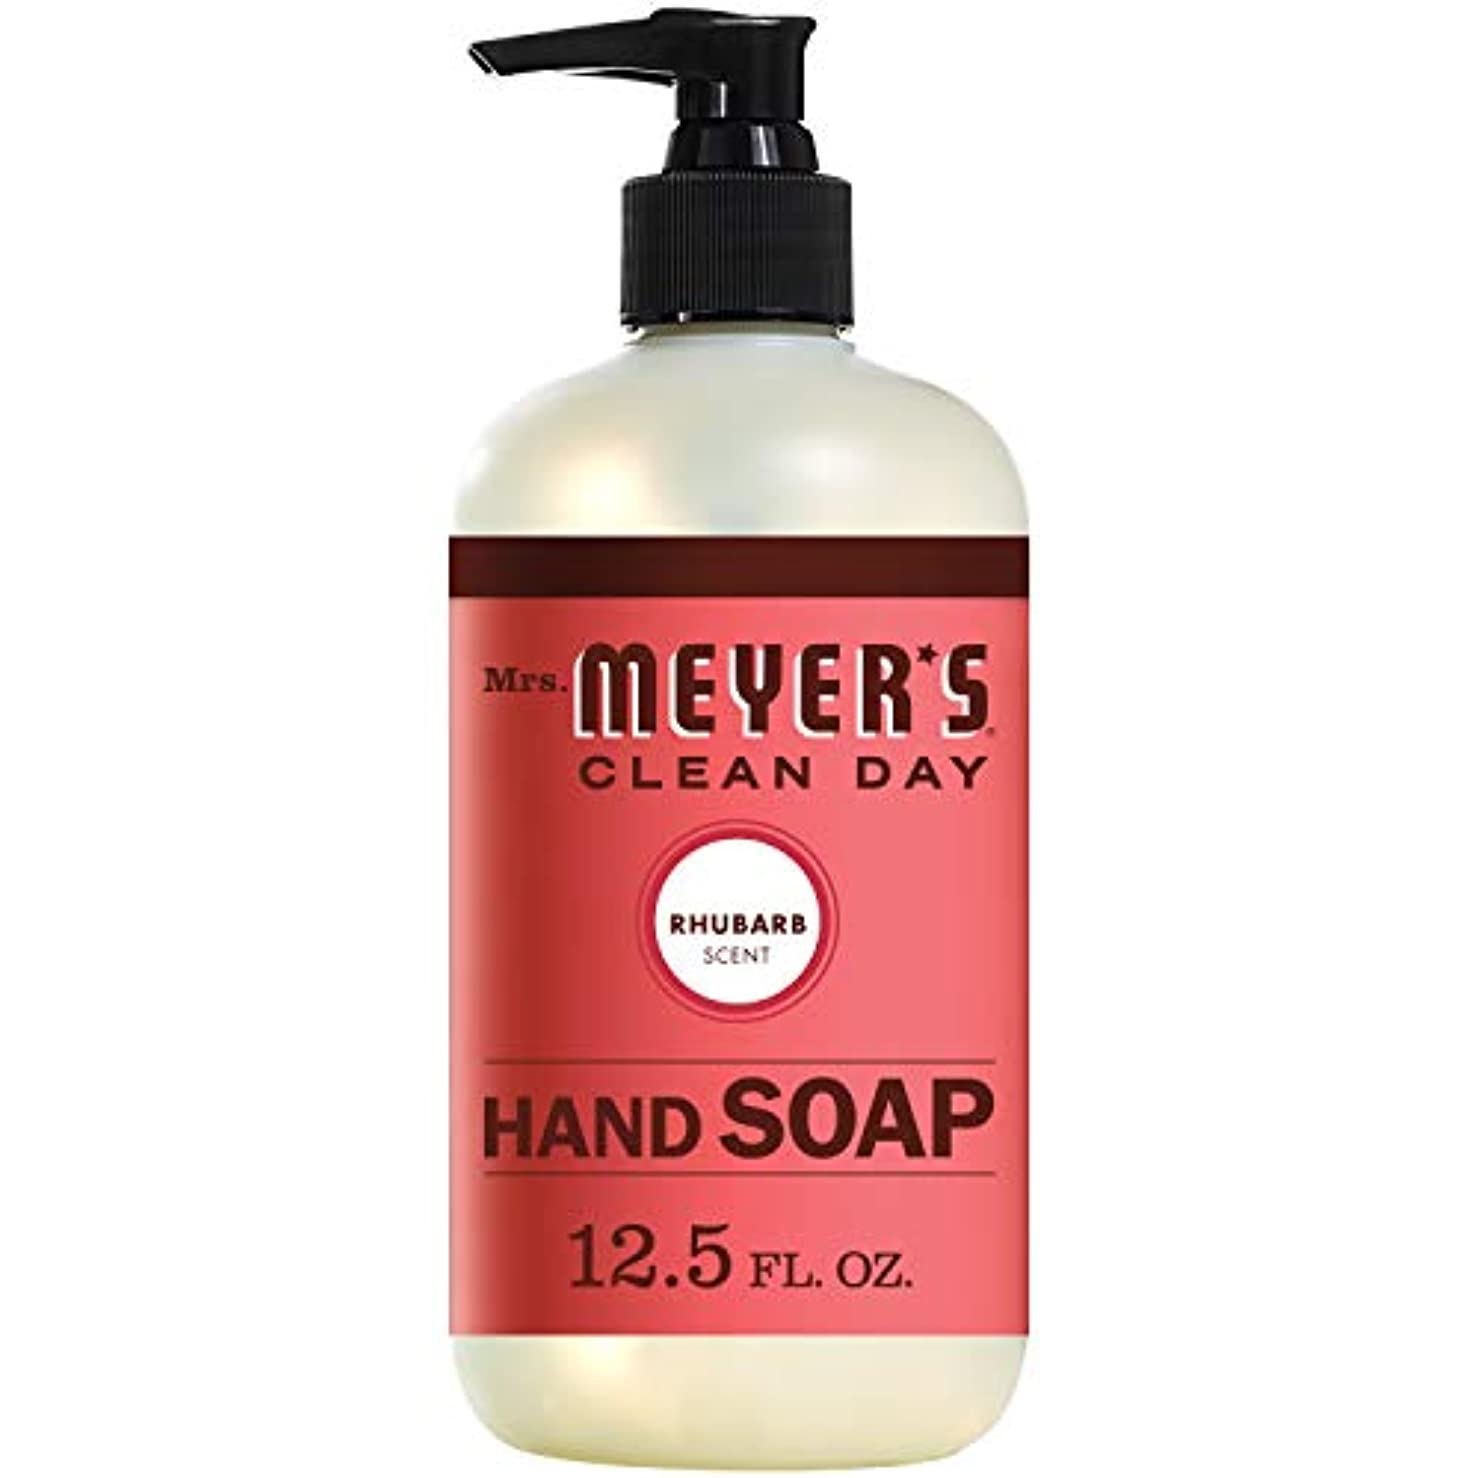 比率不承認手入れMrs. Meyers Clean Day, Liquid Hand Soap, Rhubarb Scent, 12.5 fl oz (370 ml)